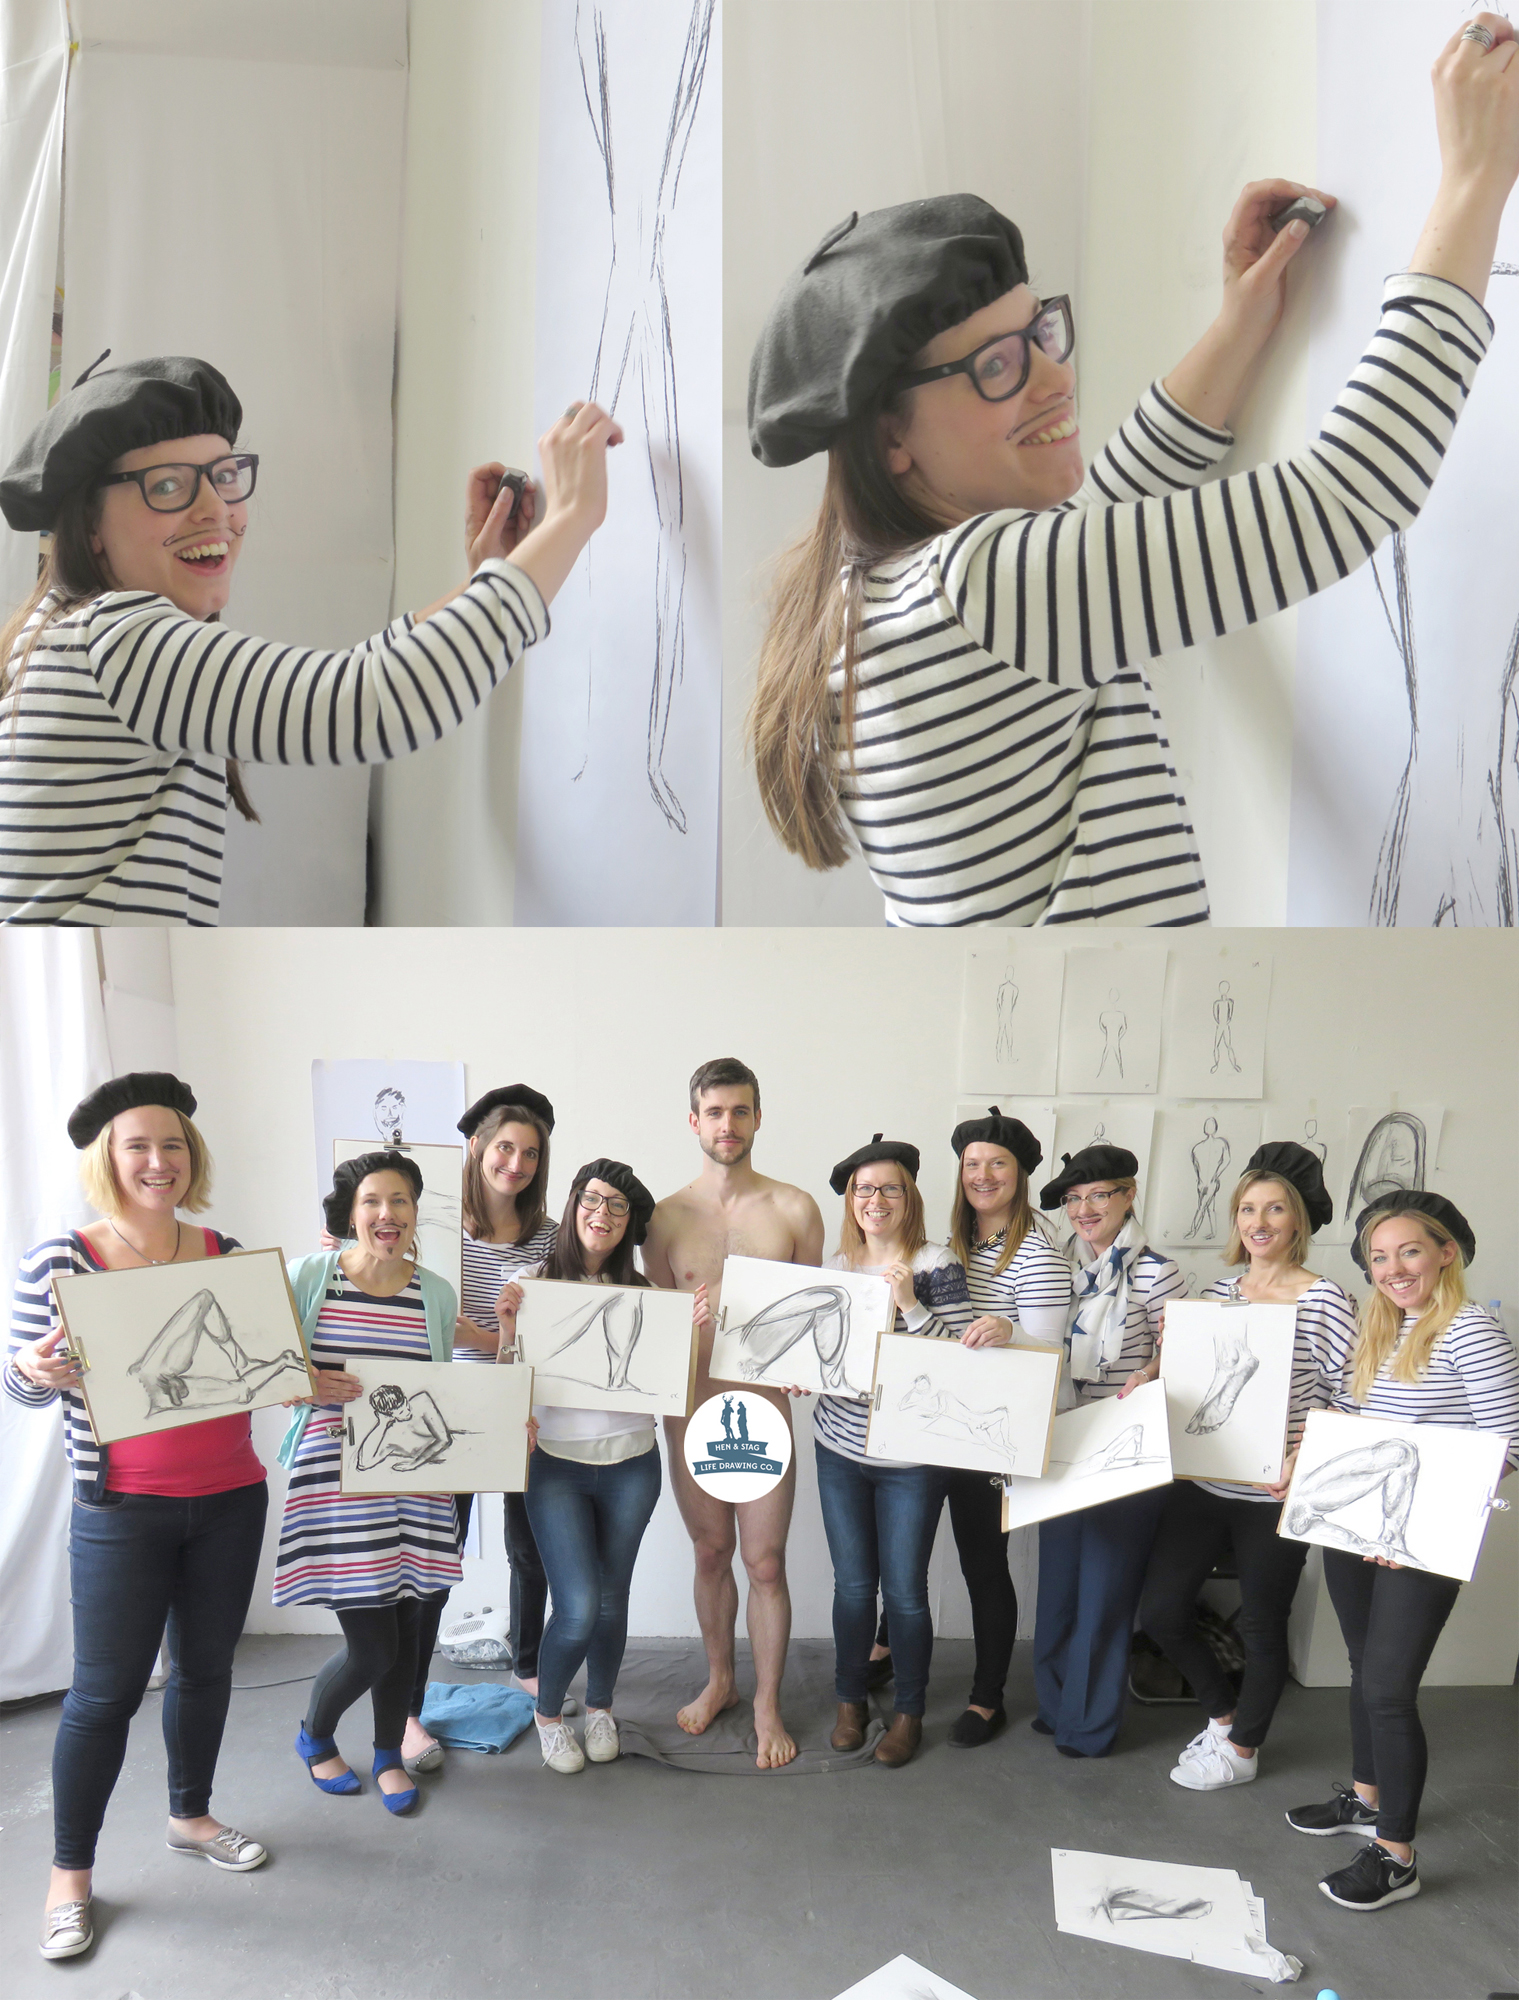 Harry Potter Life Drawing Hen Party | Hen U0026 Stag Life Drawing Co.